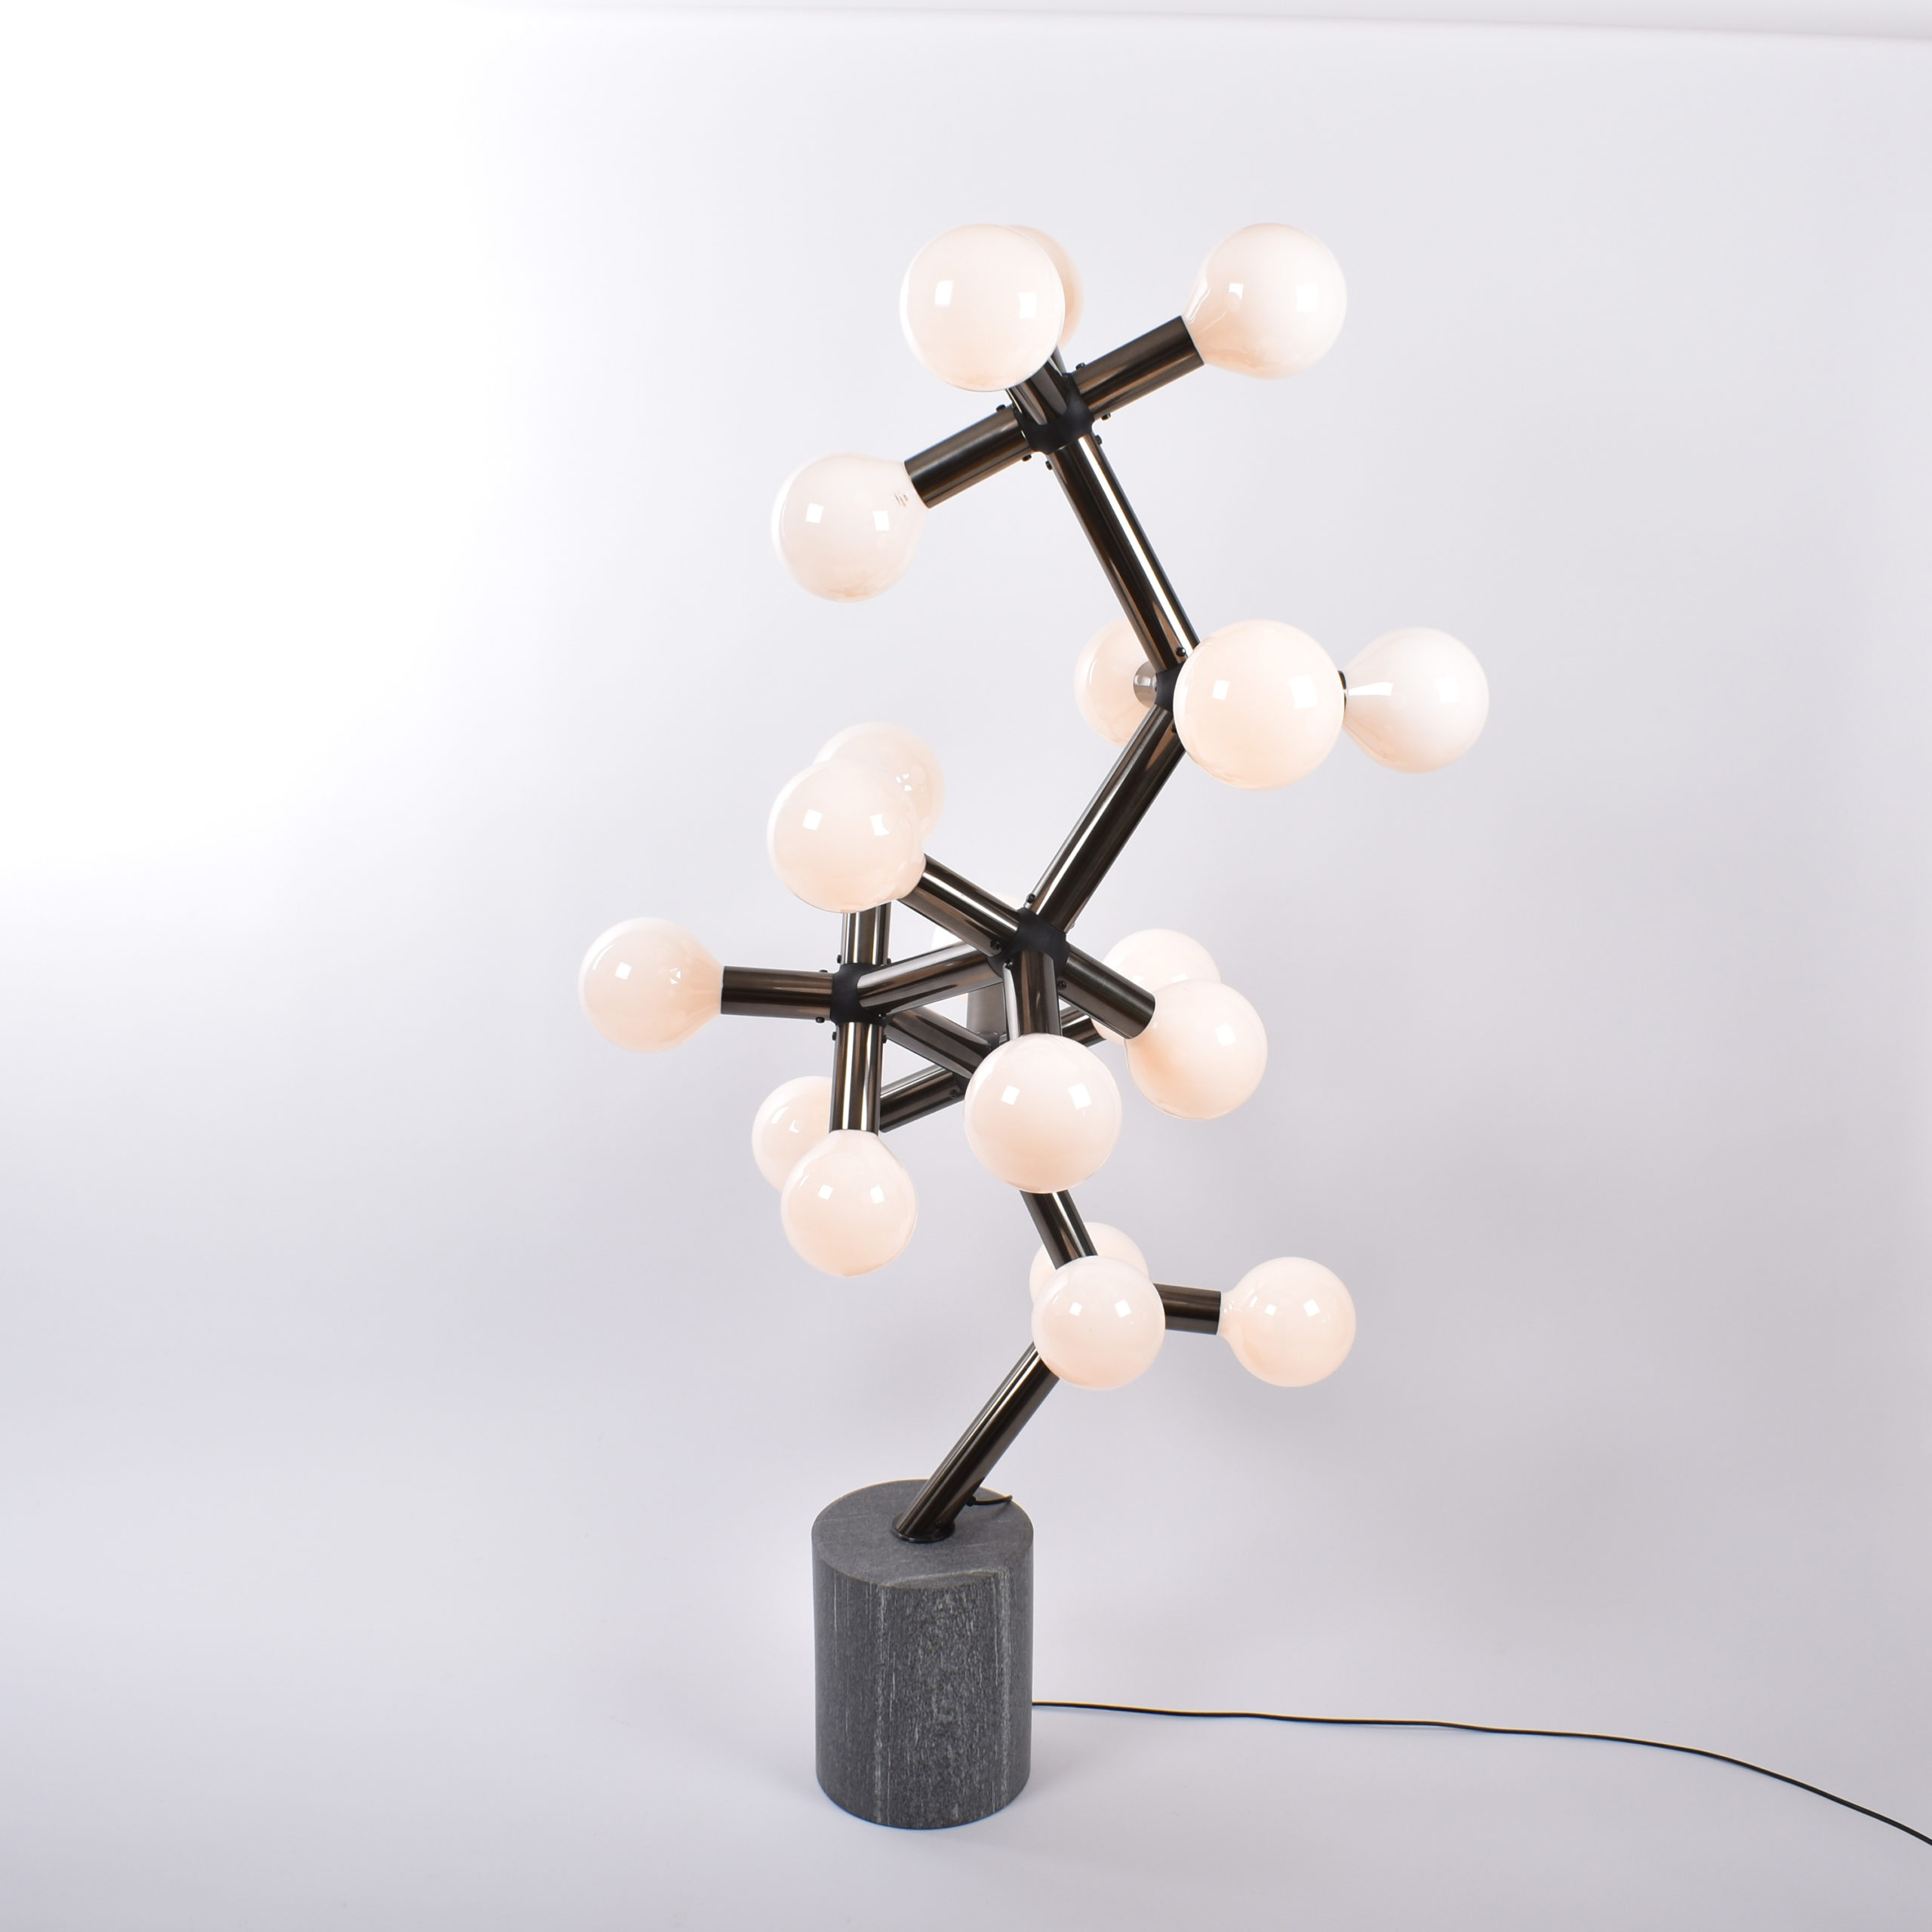 vintage floor lamp by Haussmann for Swisslamps International